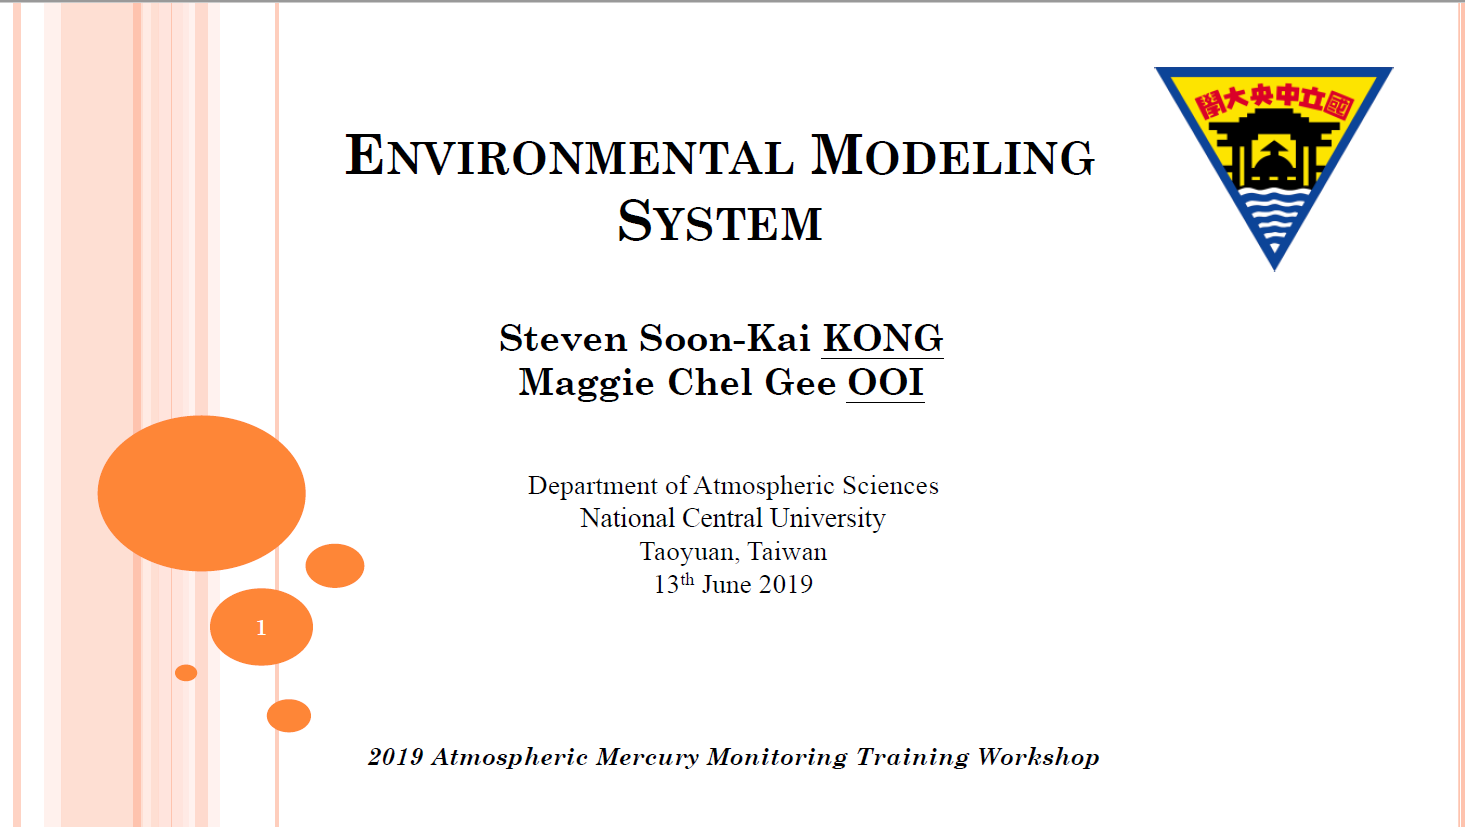 First page of Environmental Modeling System